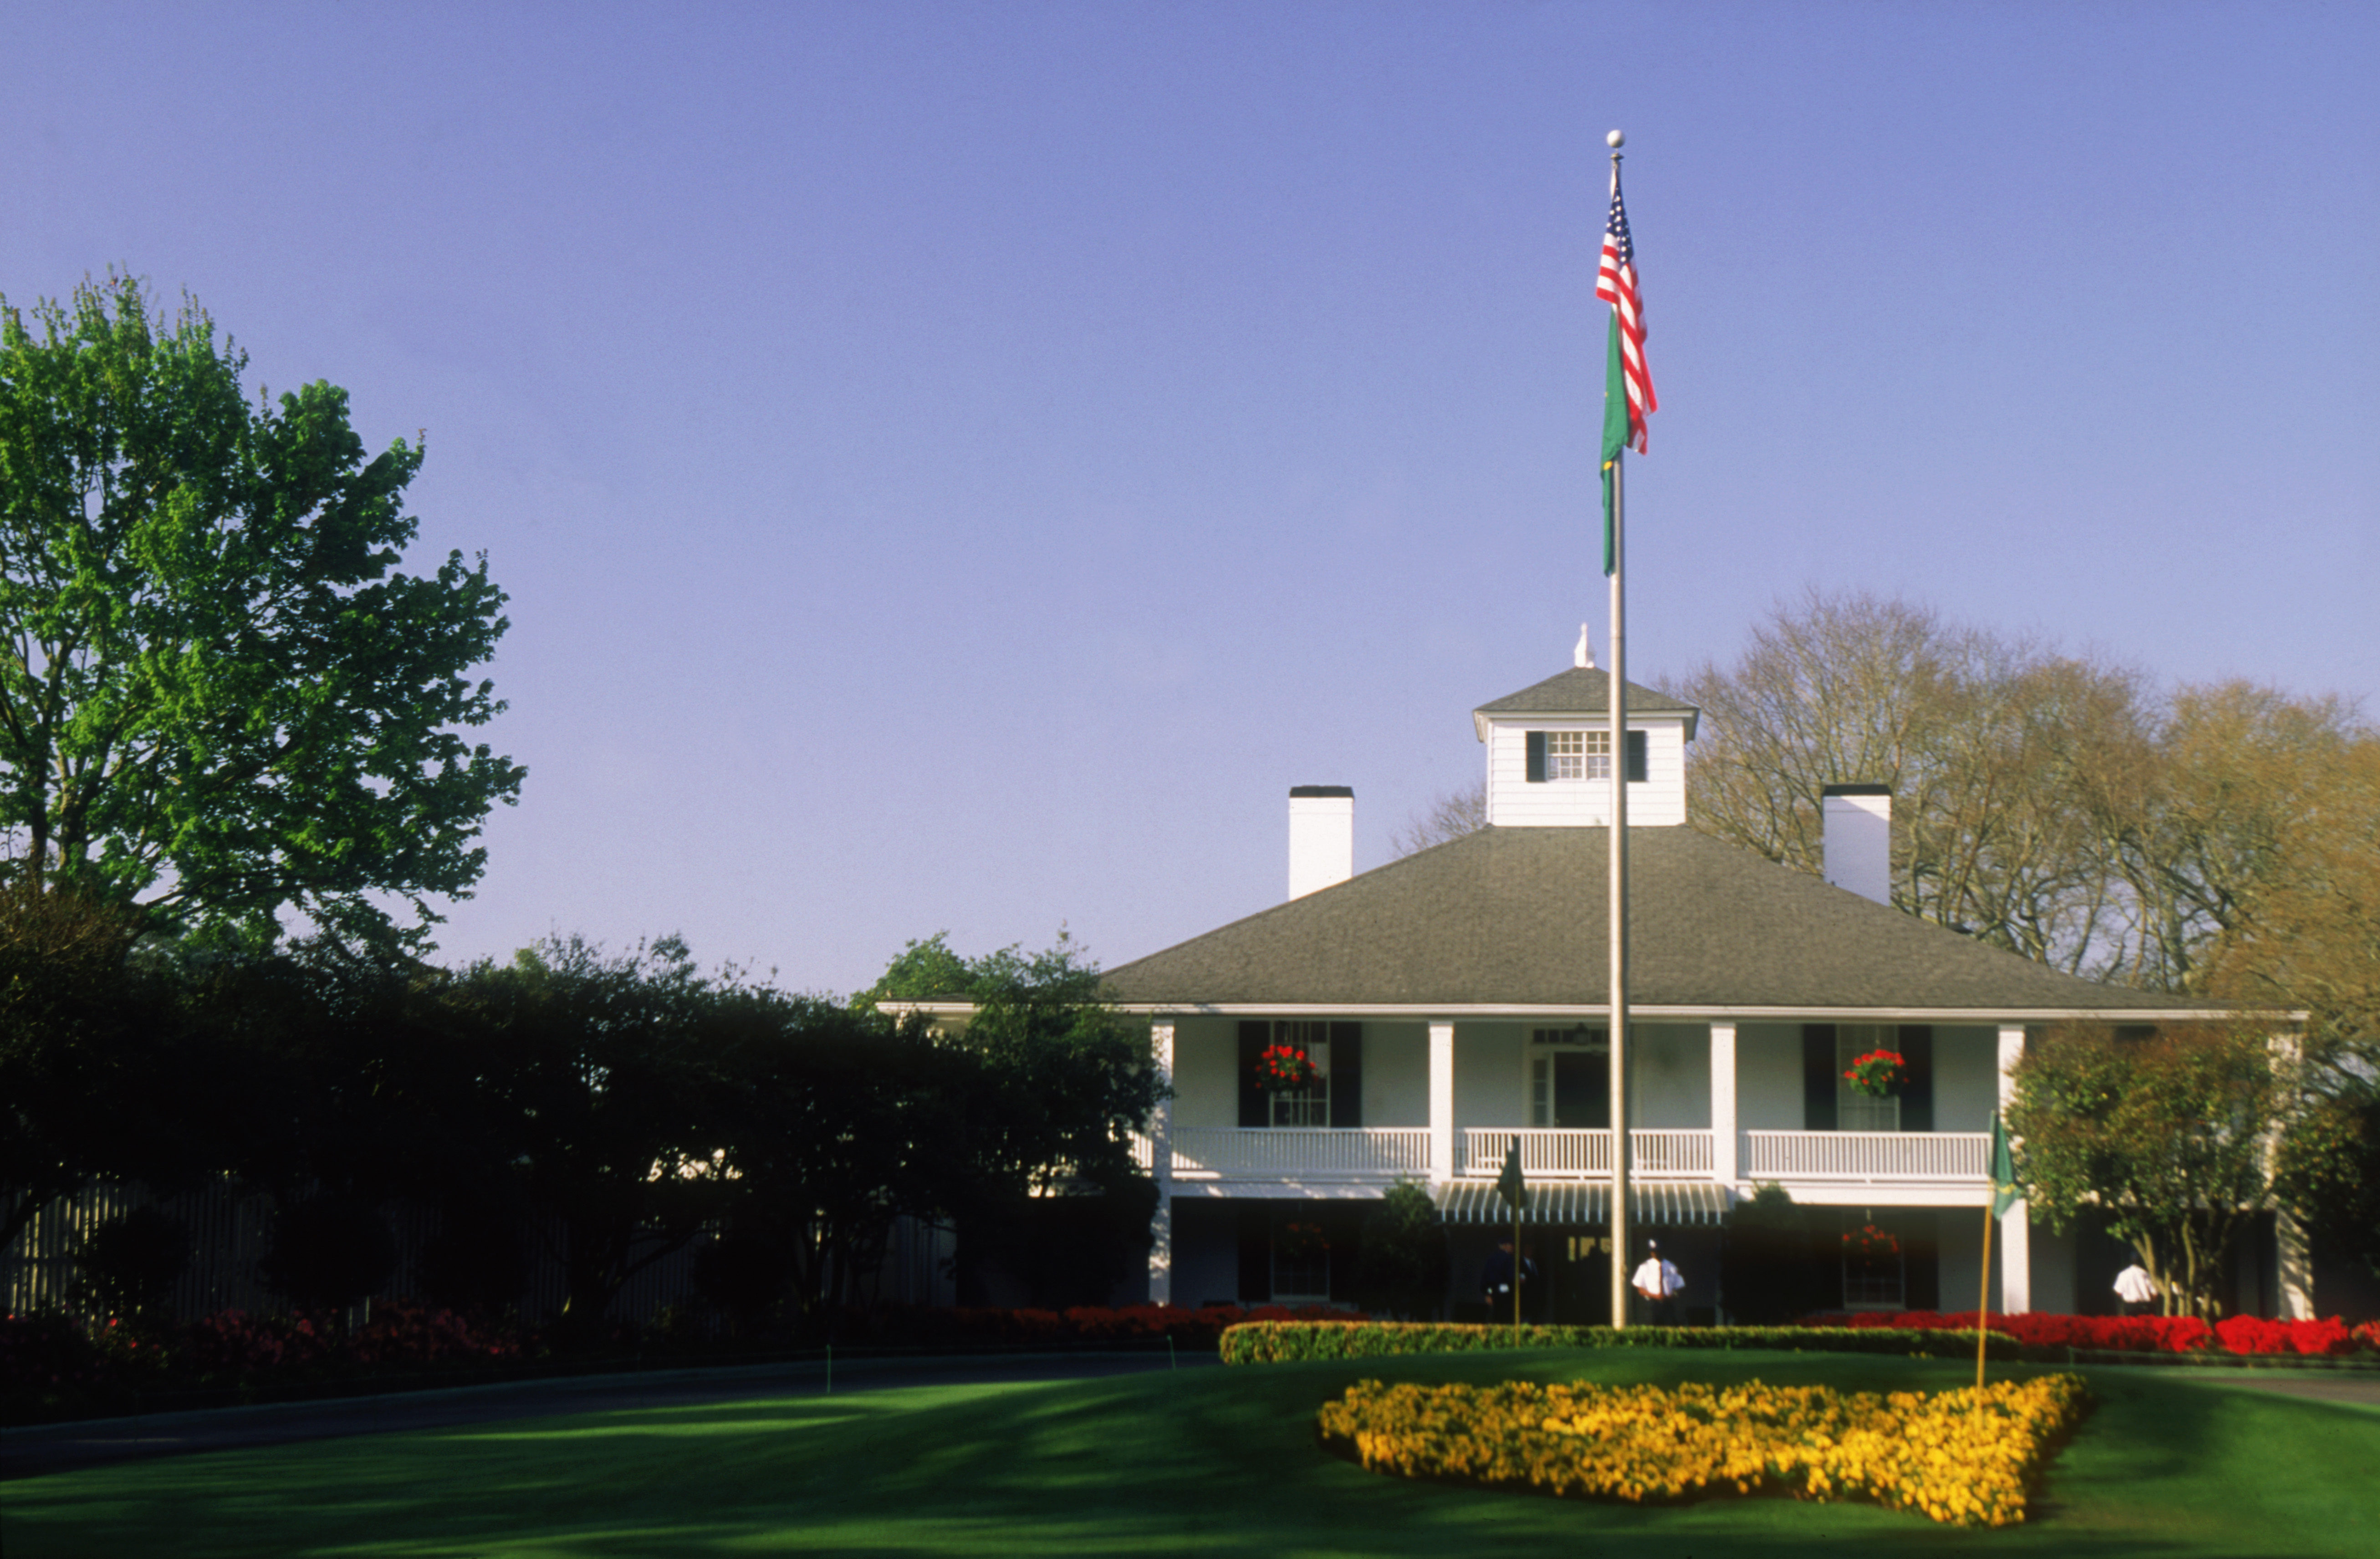 AUGUSTA - APRIL 11:  General view of the Club House taken at the Augusta National Golf Club during the US Masters tournament on April 11, 1996 in Augusta, Georgia, USA. (Photo by David Cannon/Getty Images)